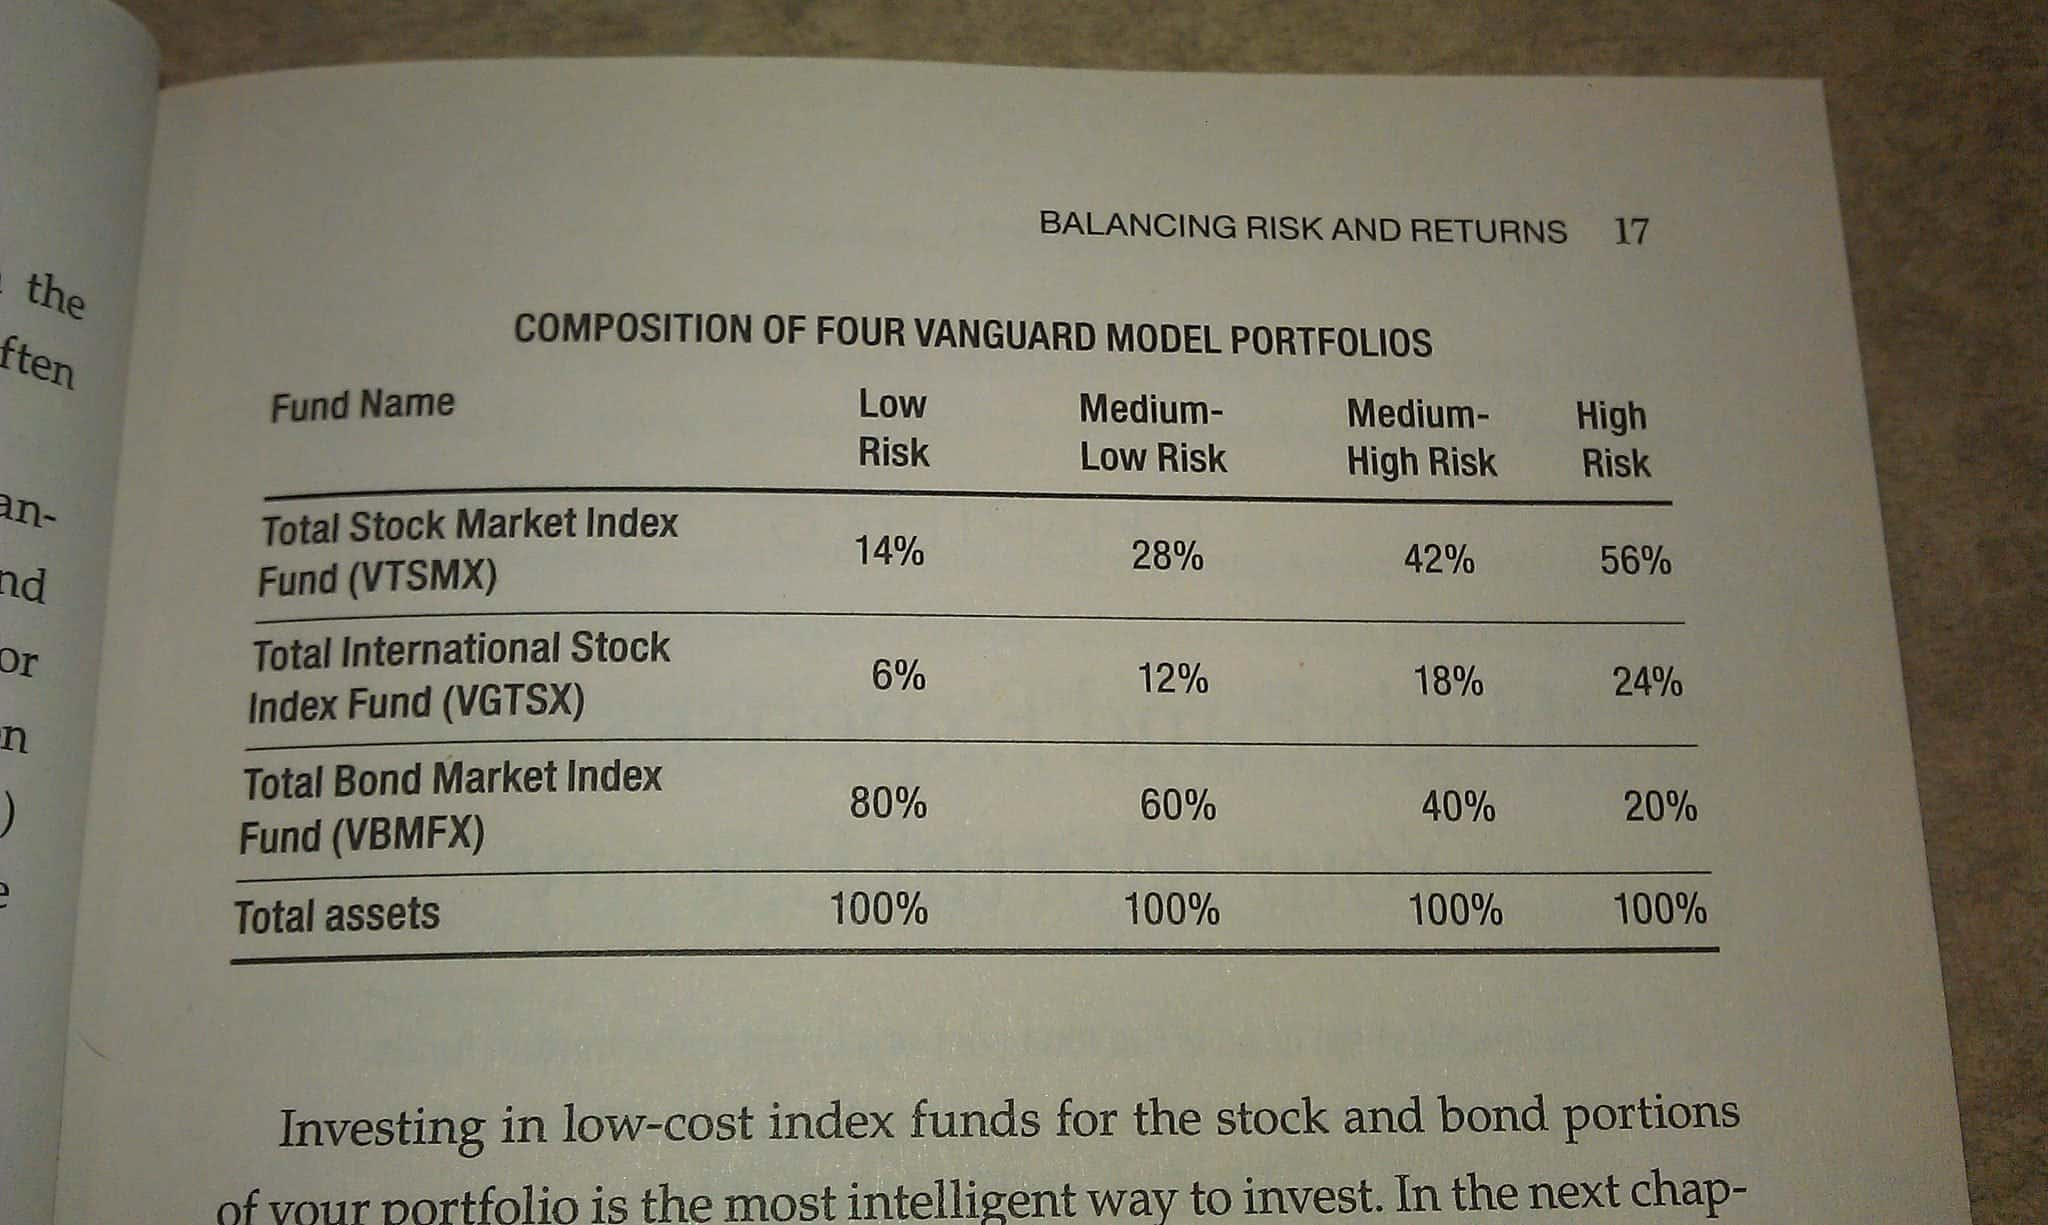 Vanguard Index Funds